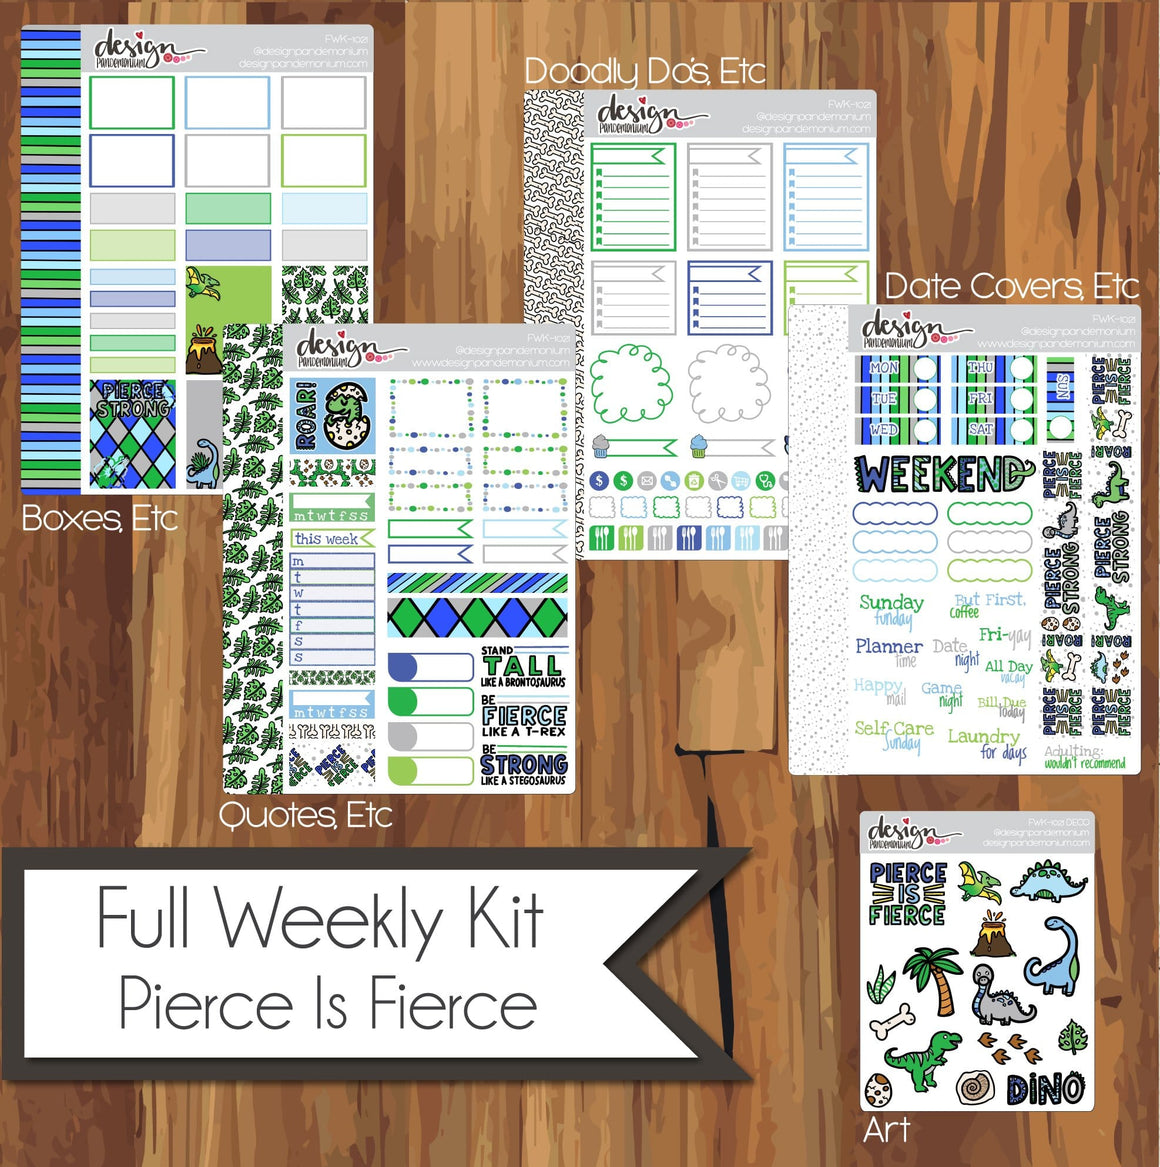 Full Weekly Kit - Pierce Is FIERCE